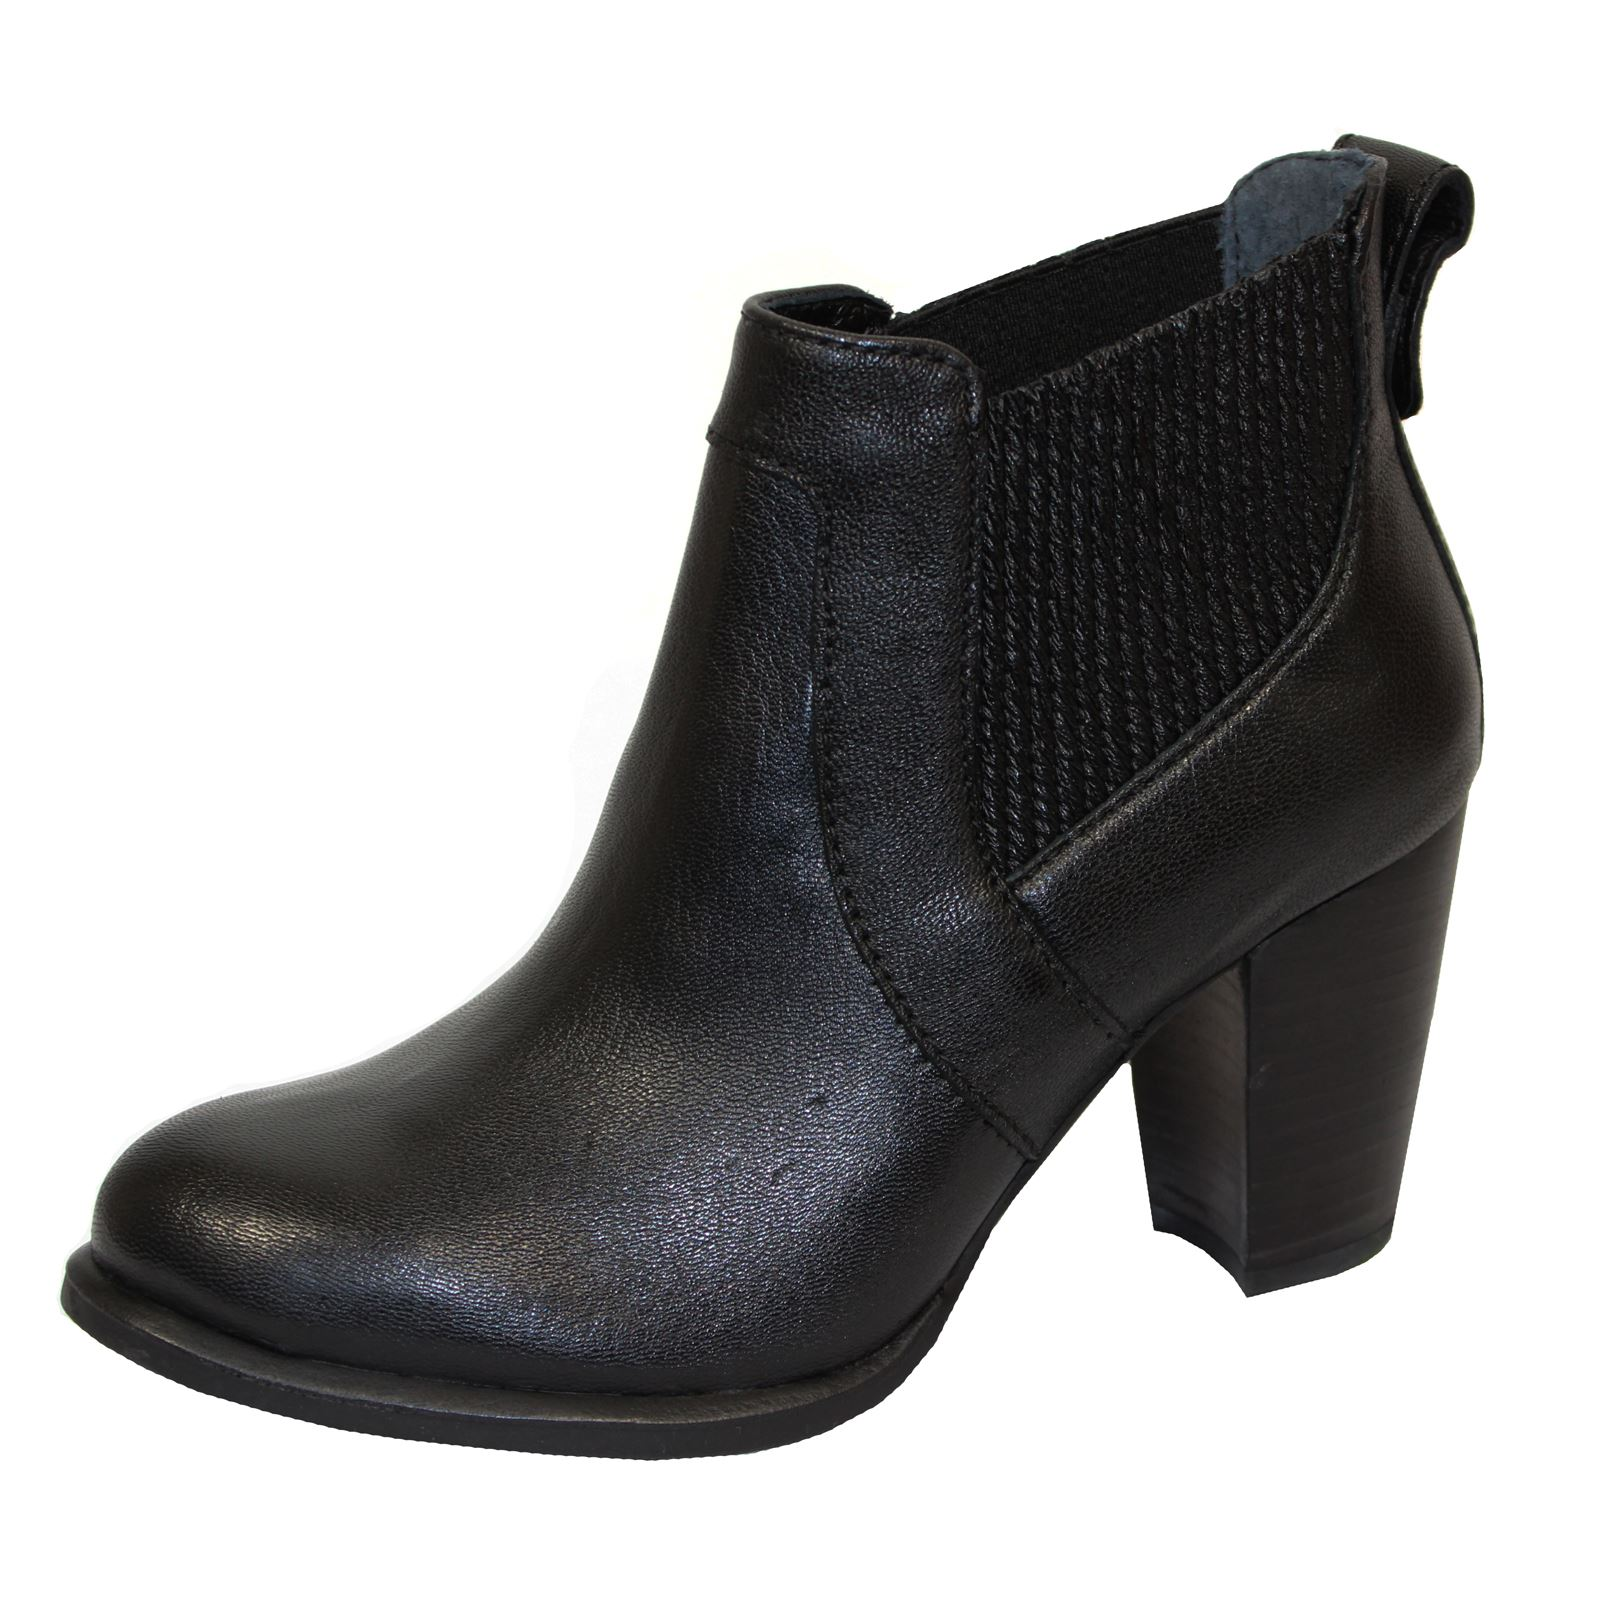 UGG COBIE II WOMENS BLACK LEATHER HEELED ANKLE BOOTS